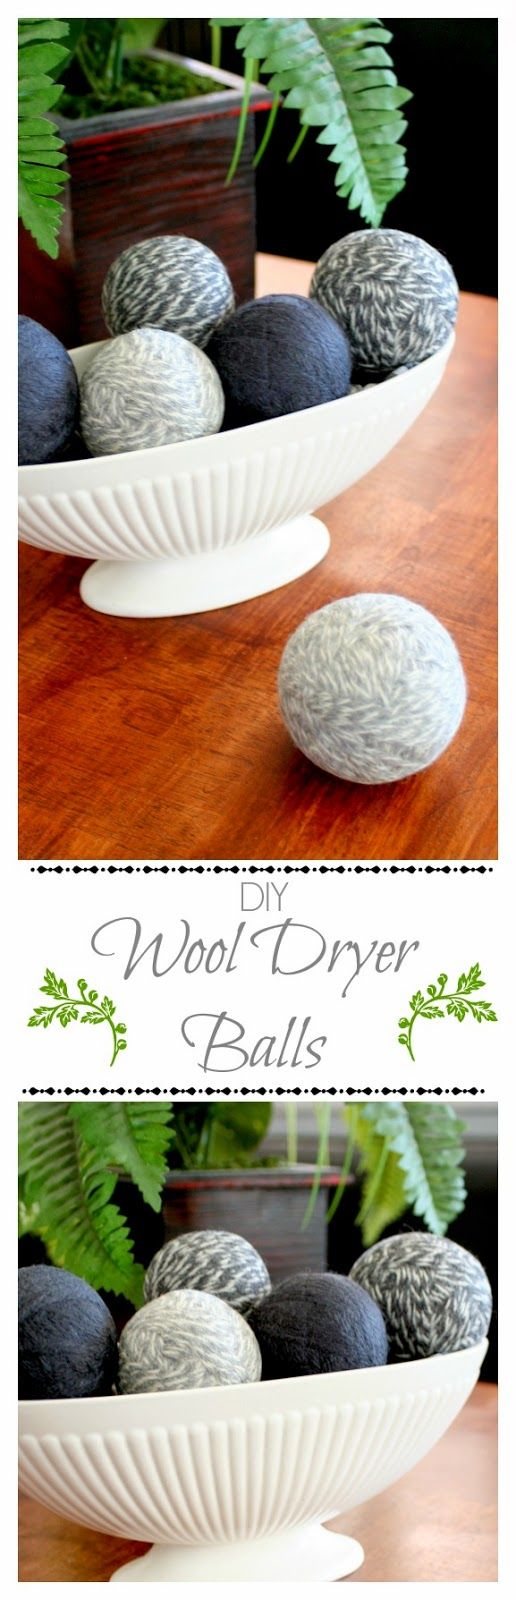 Jordan's Onion: DIY Wool Dryer Balls